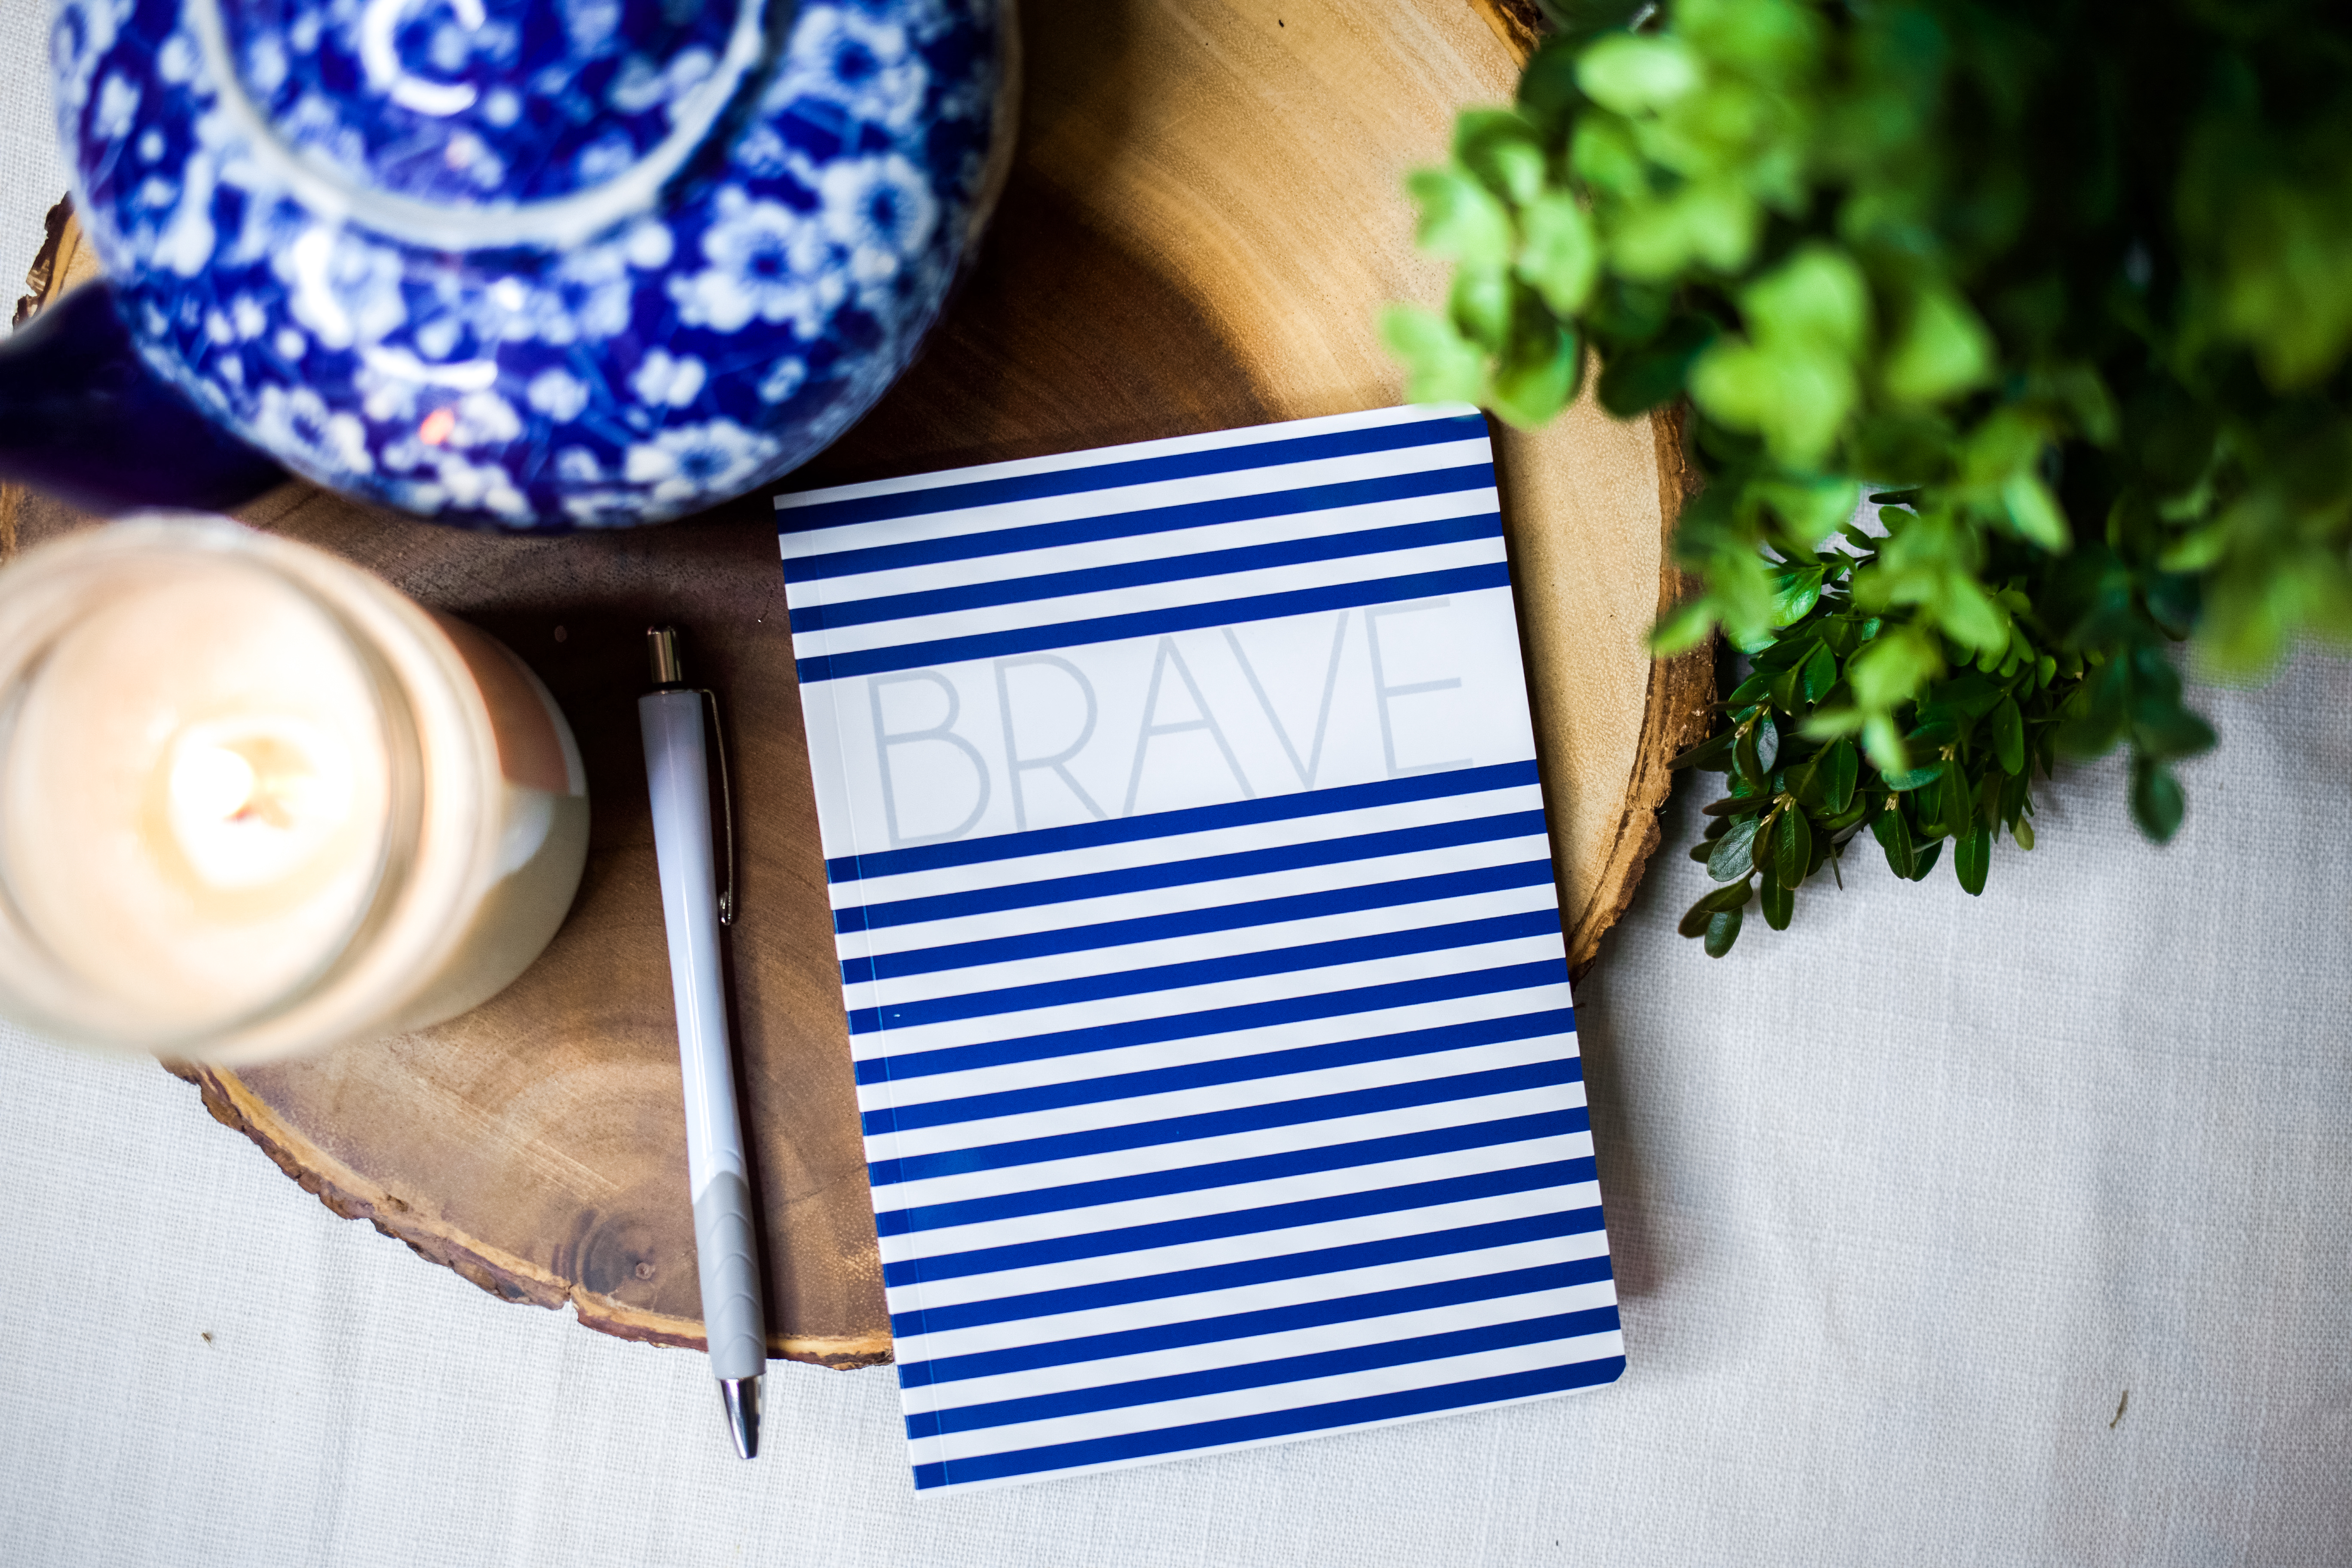 BRAVE Navy Striped Notebook | BeckyLMcCoy.com/shop